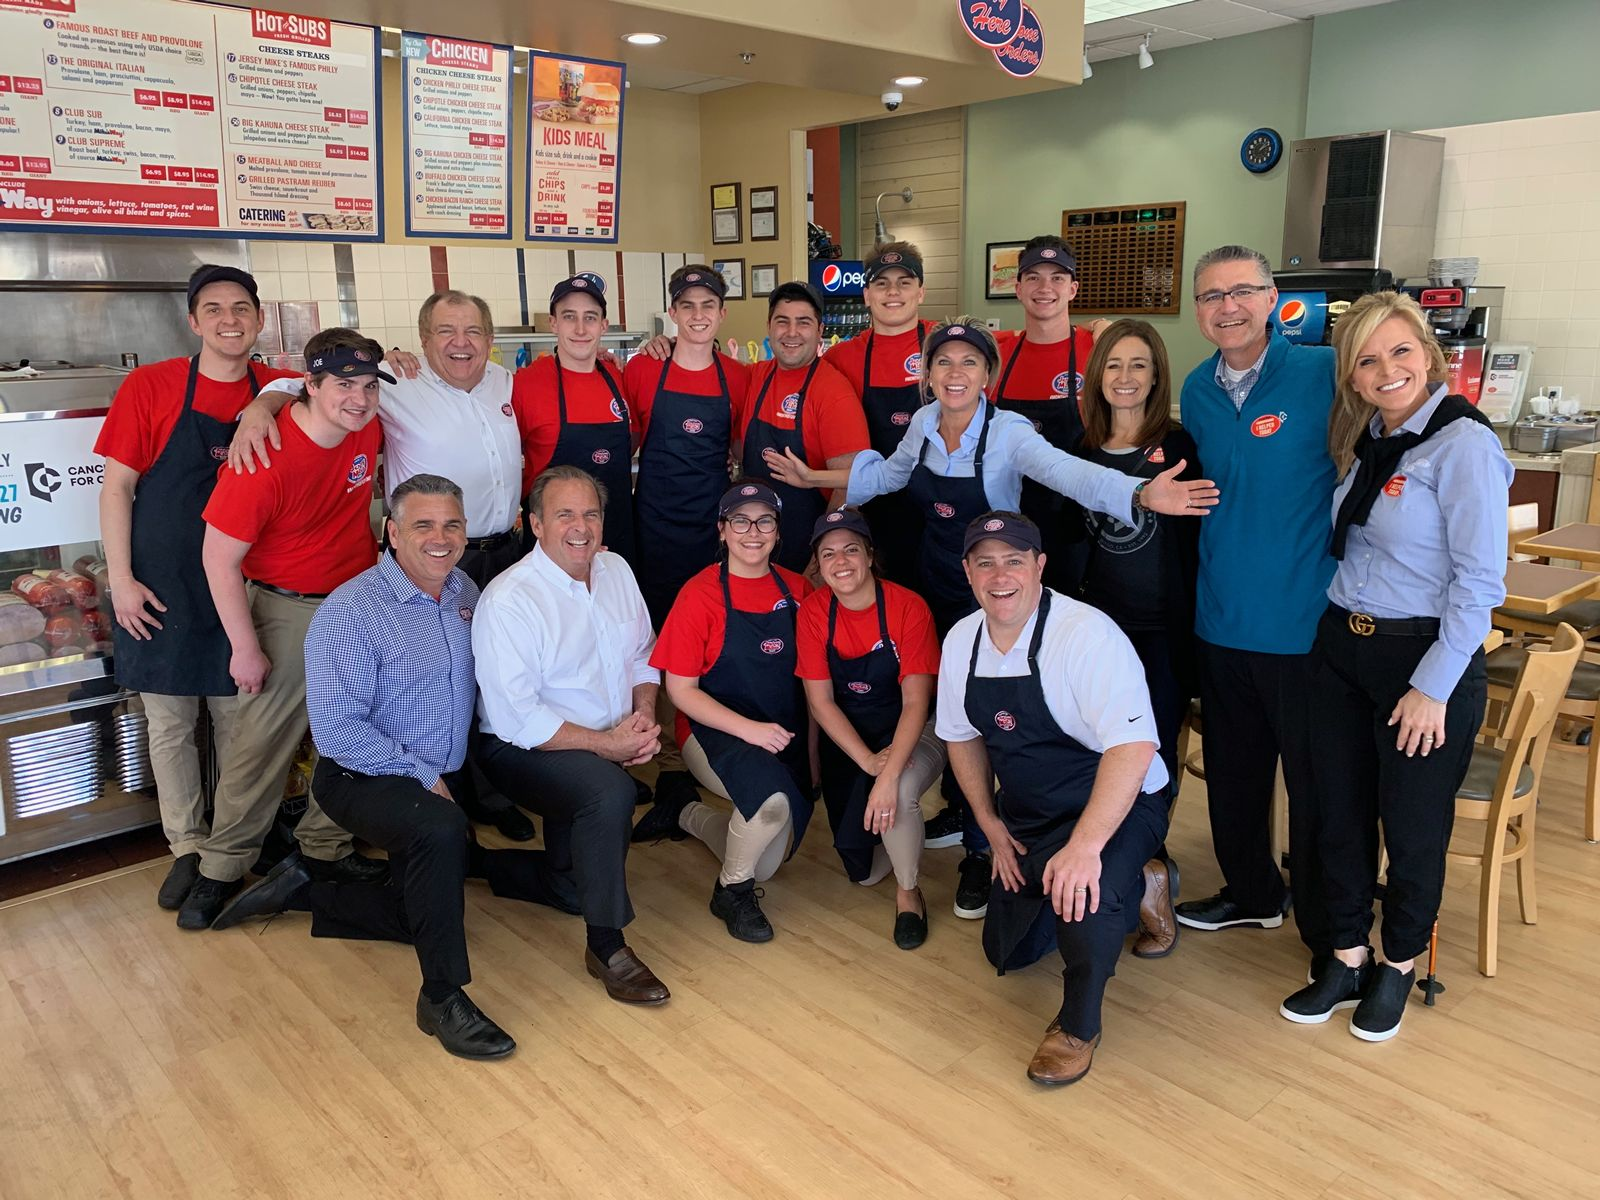 Founder & CEO Peter Cancro (kneeling, 2nd from left) celebrating Jersey Mike's 9th Annual Day of Giving in 2019.